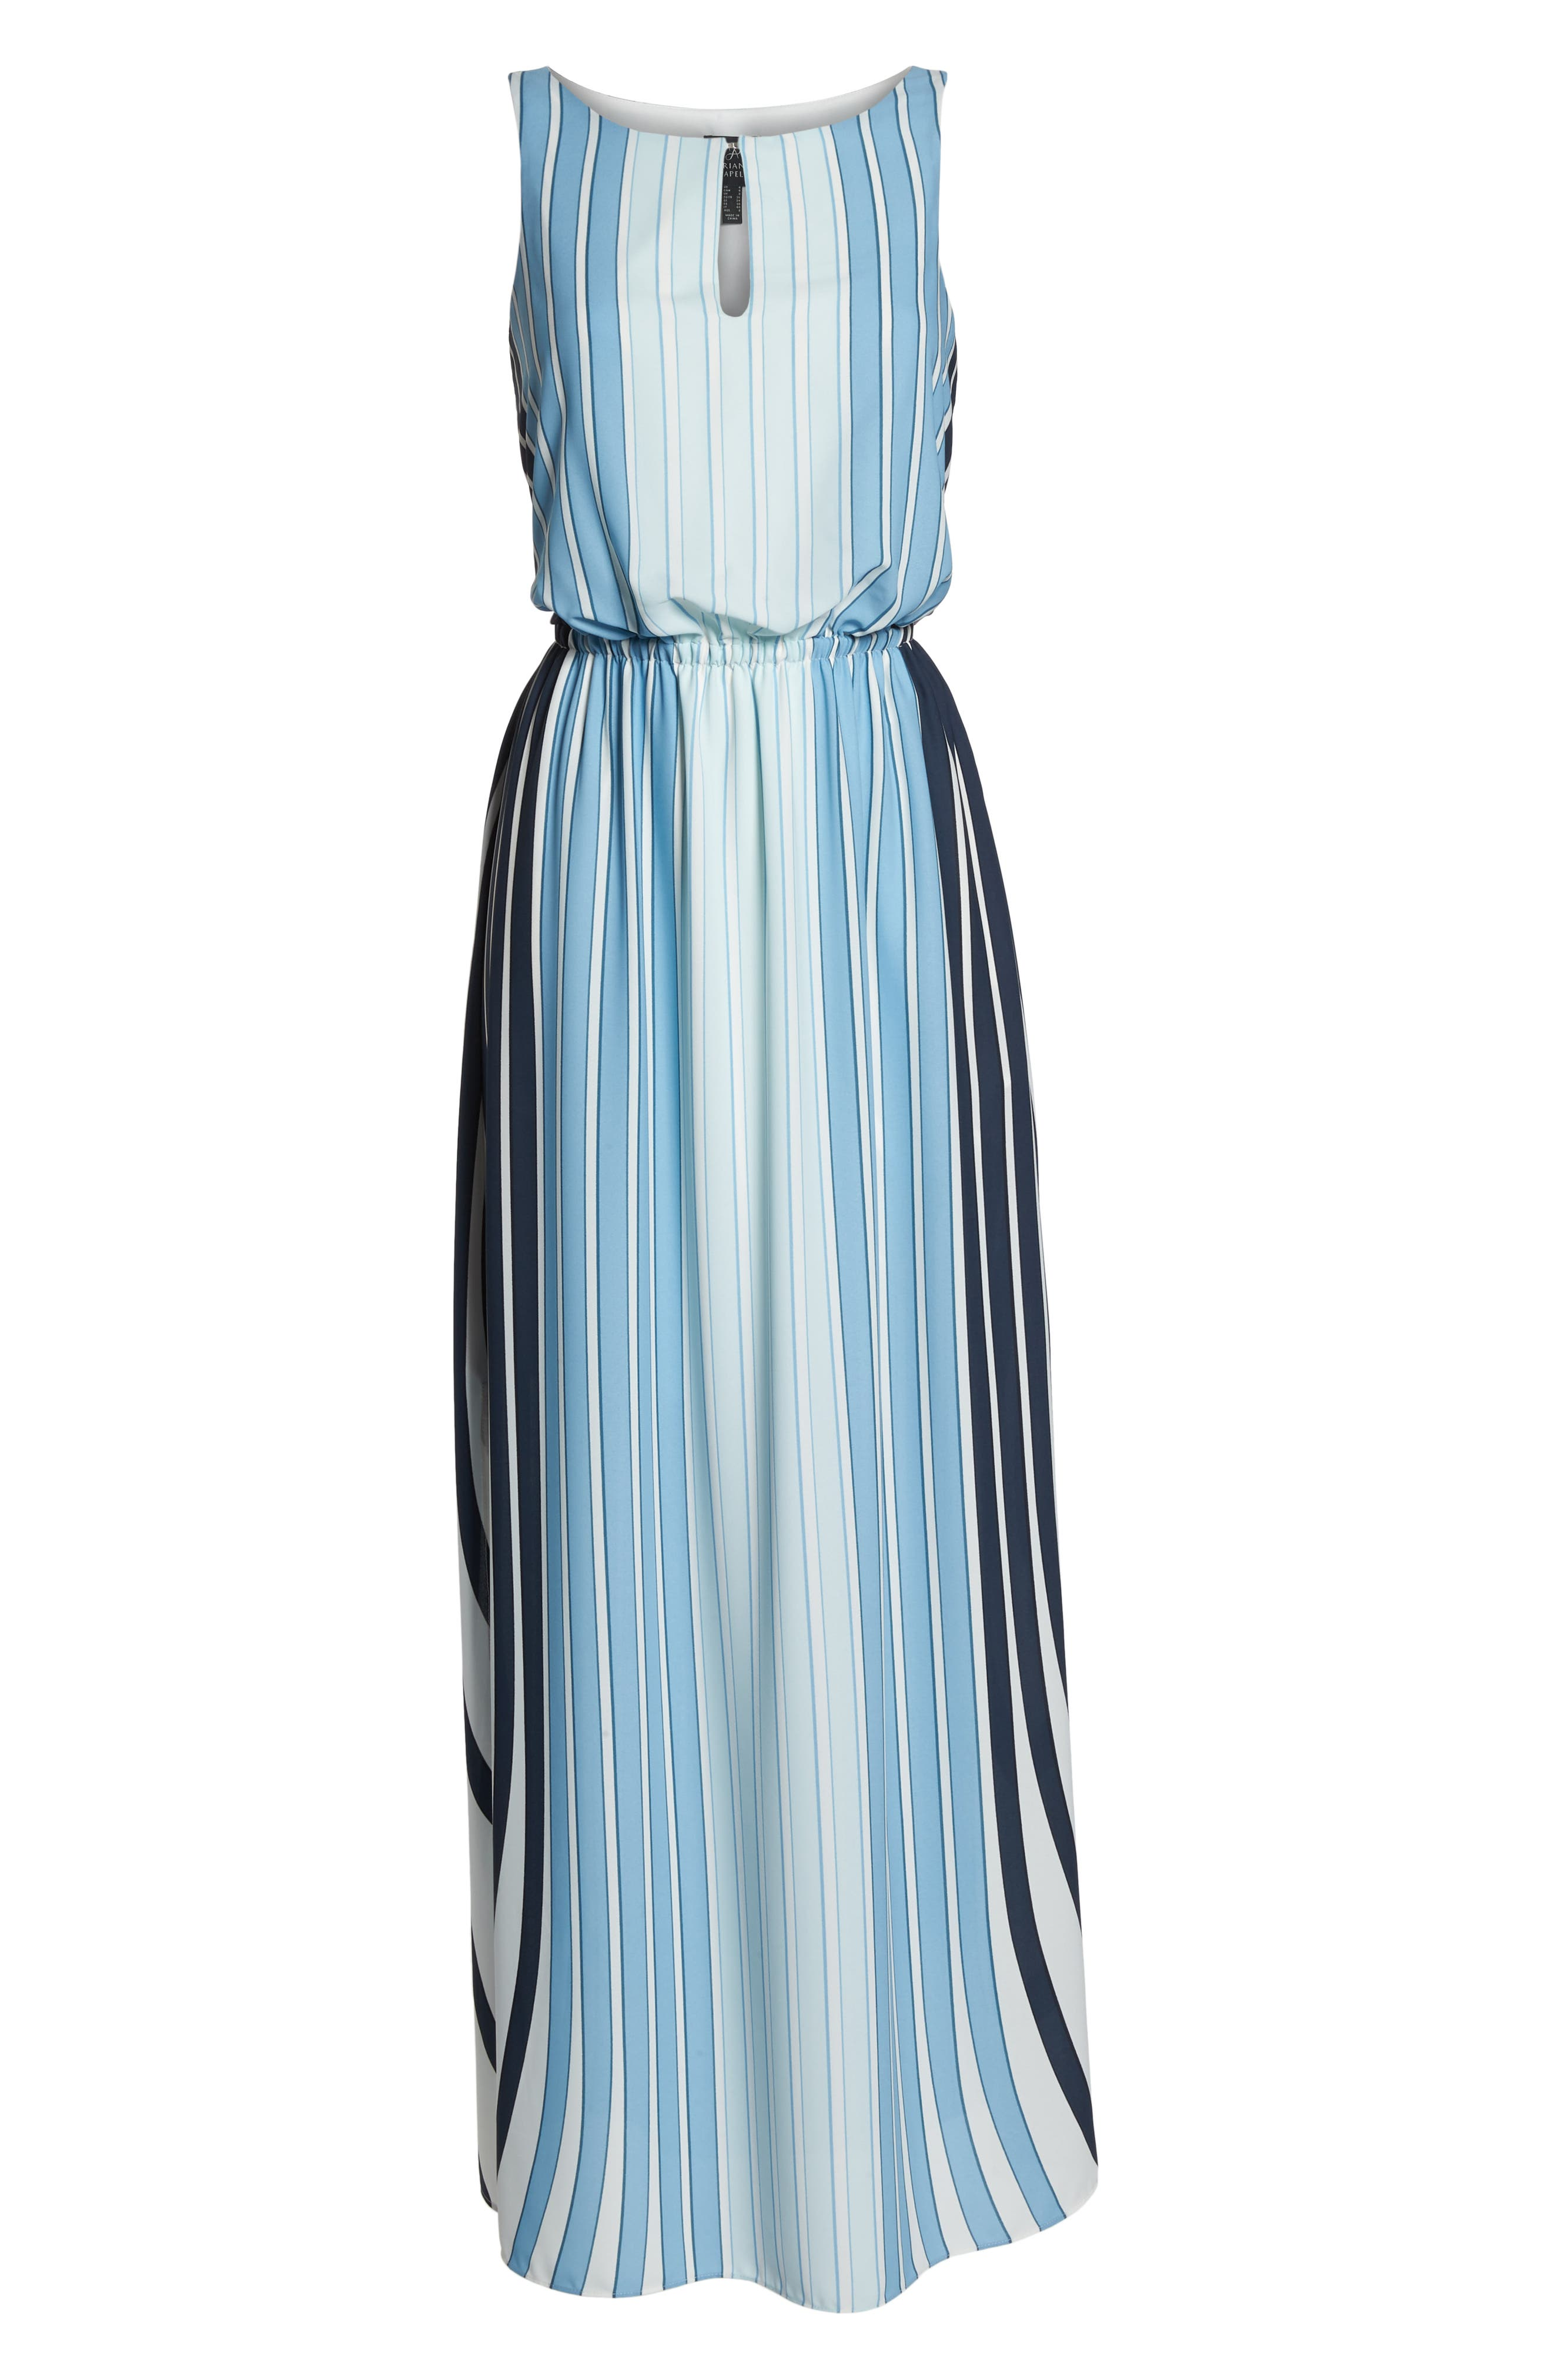 Stripe Maxi Dress,                             Alternate thumbnail 7, color,                             487